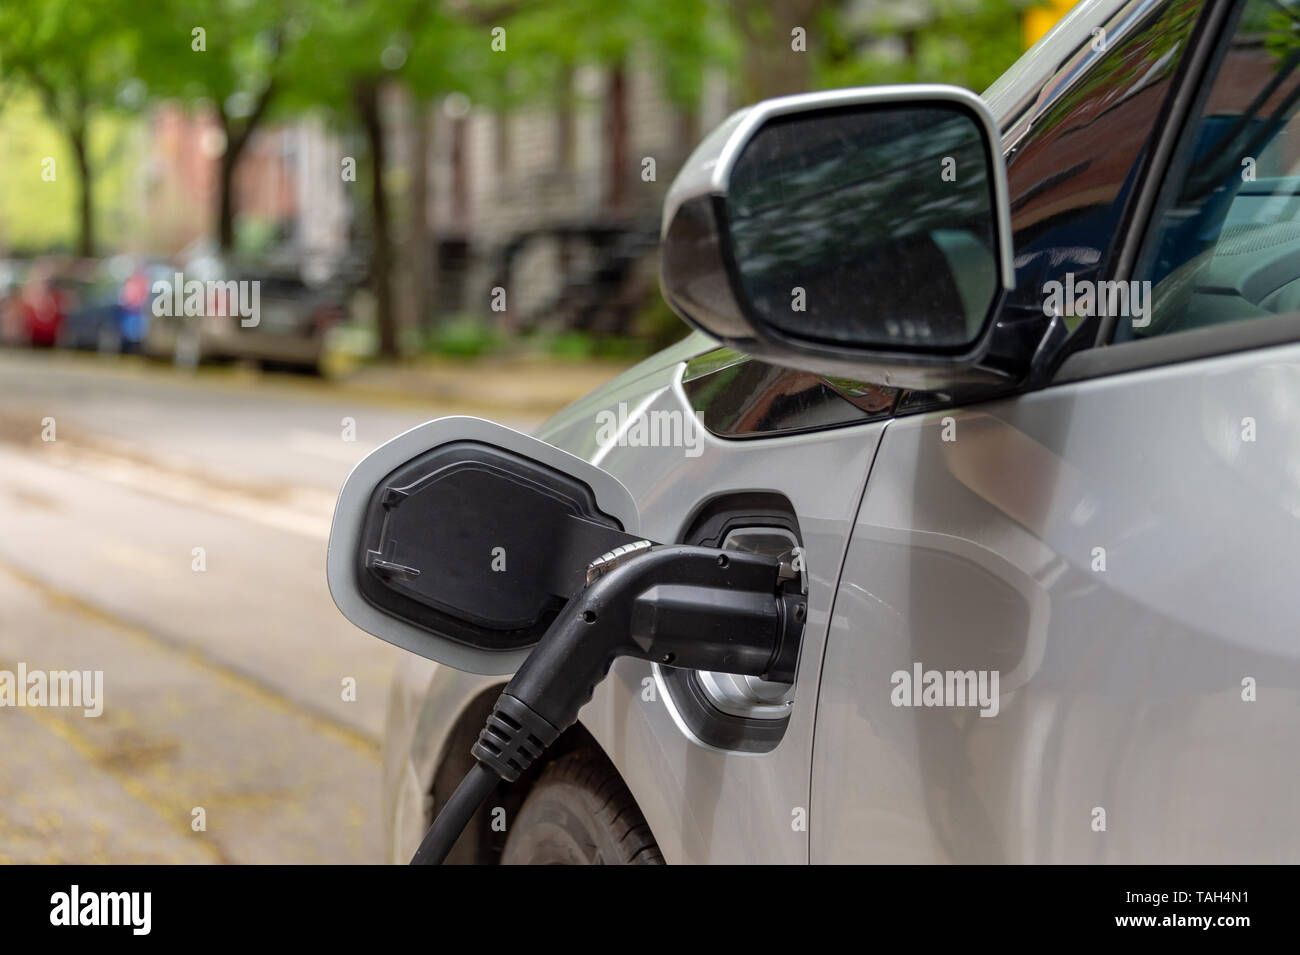 Electric car plugged into an EV charging station. - Stock Image